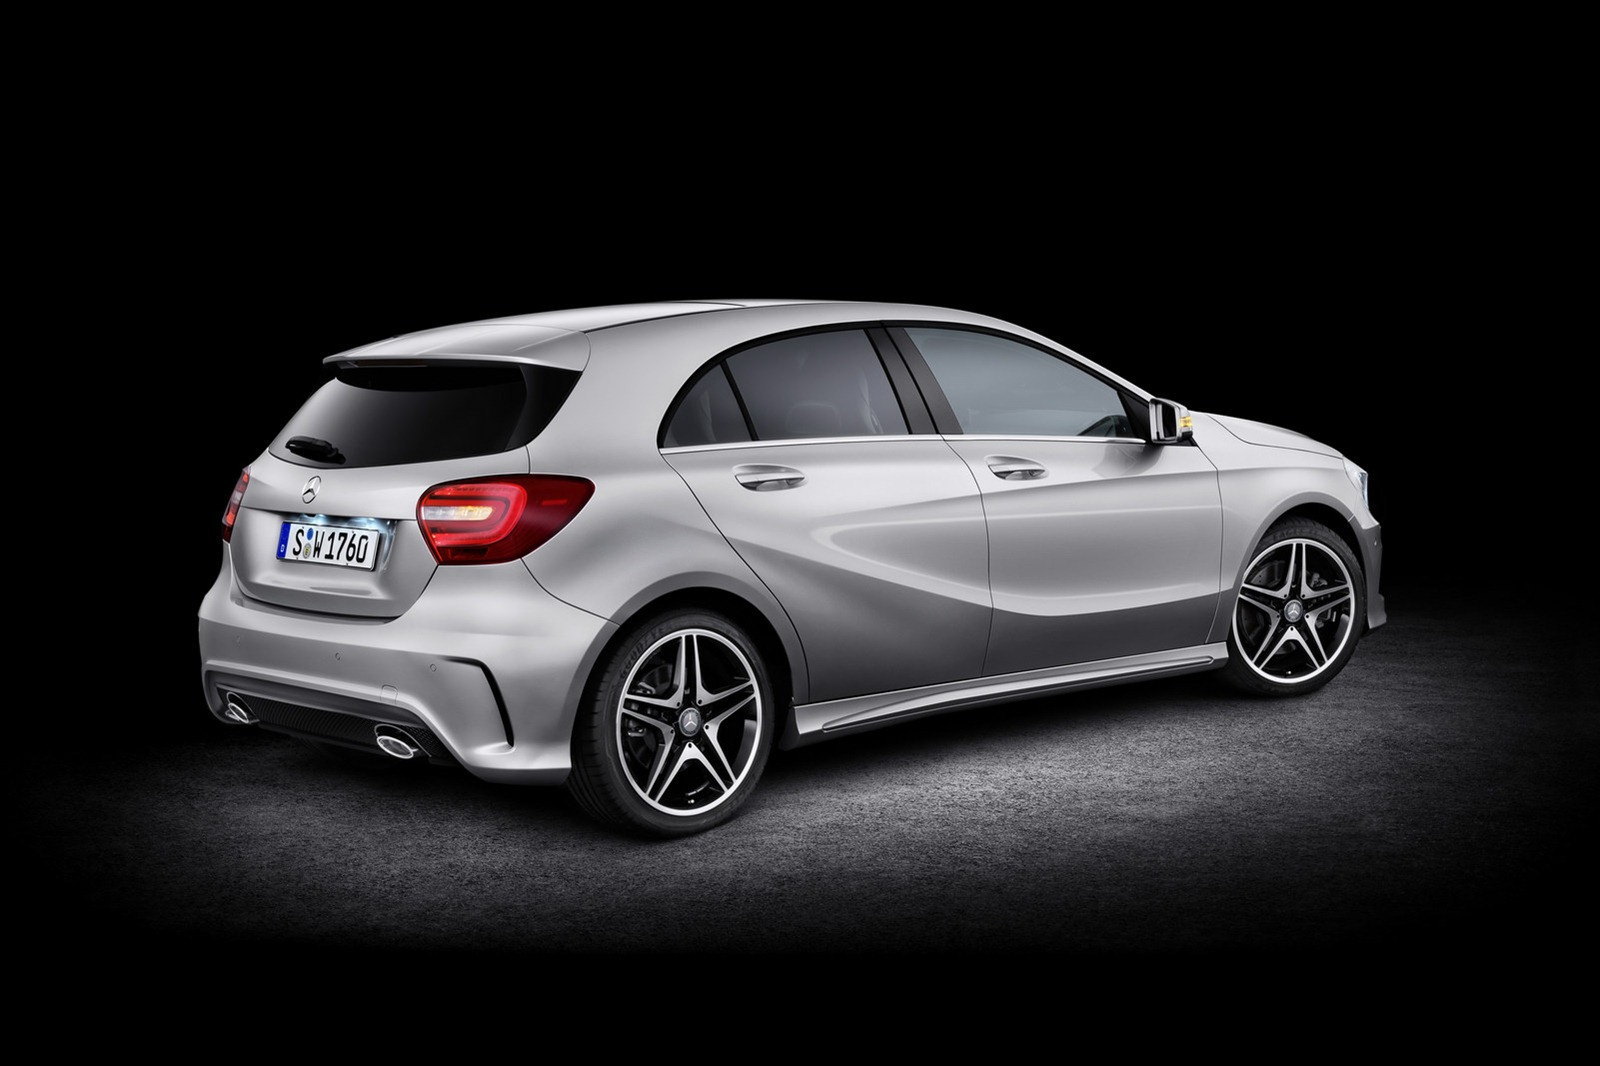 Mercedes New A Class Hatch Picture Gallery 24 Interior